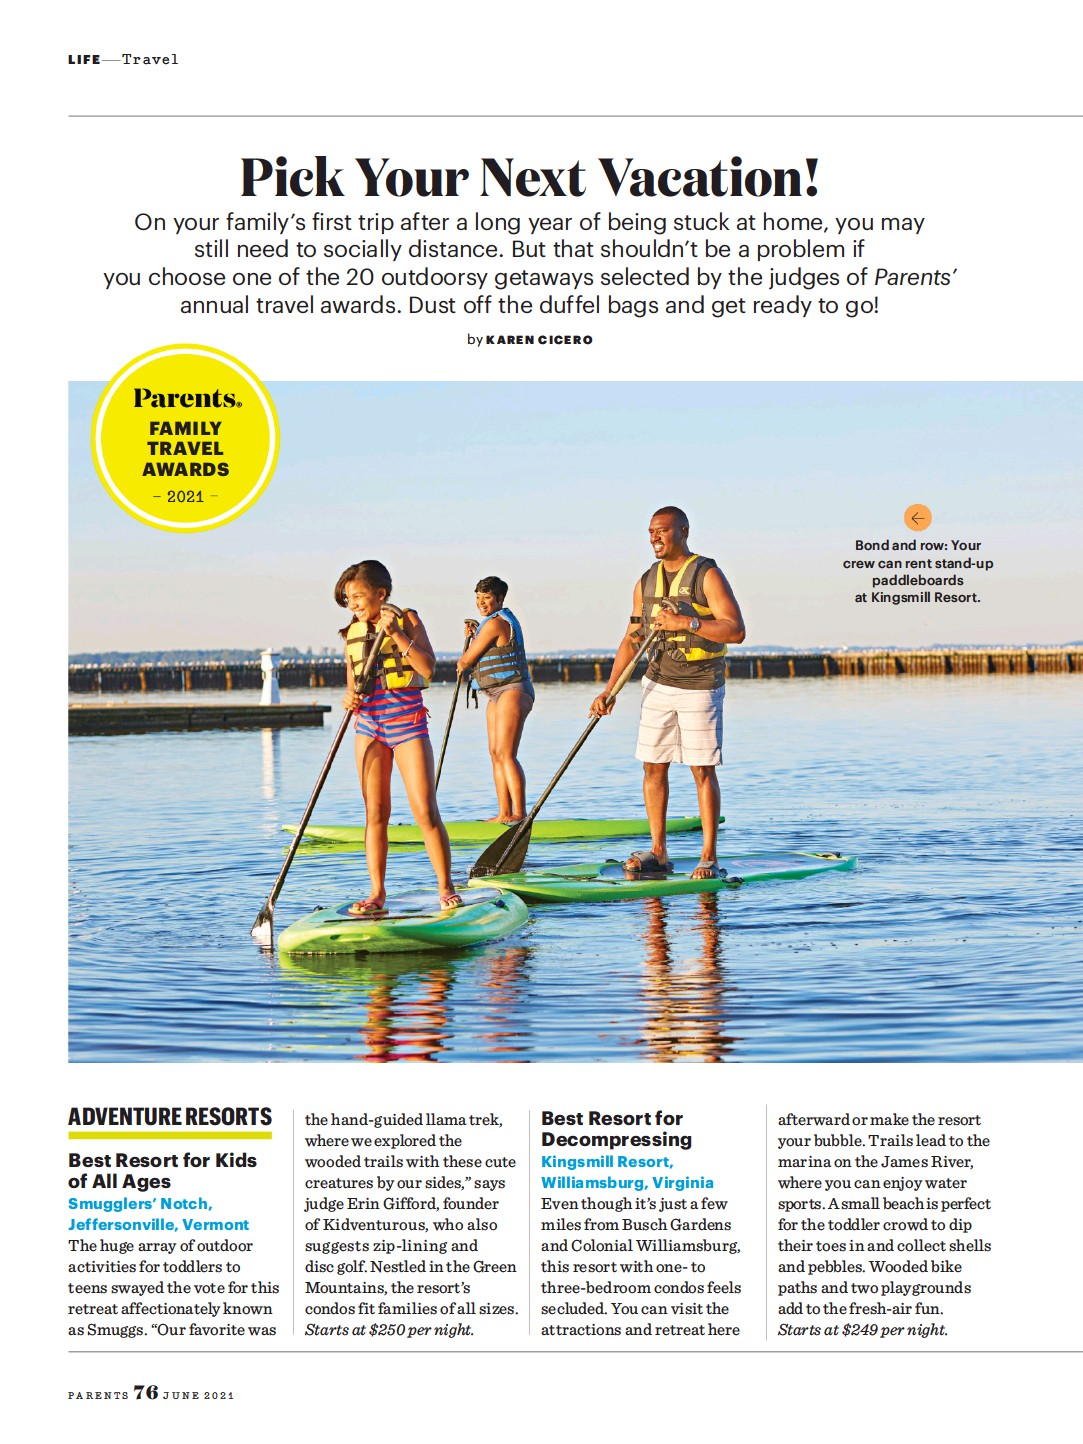 ??  ?? Bond and row: Your crew can rent stand-up paddleboards at Kingsmill Resort.